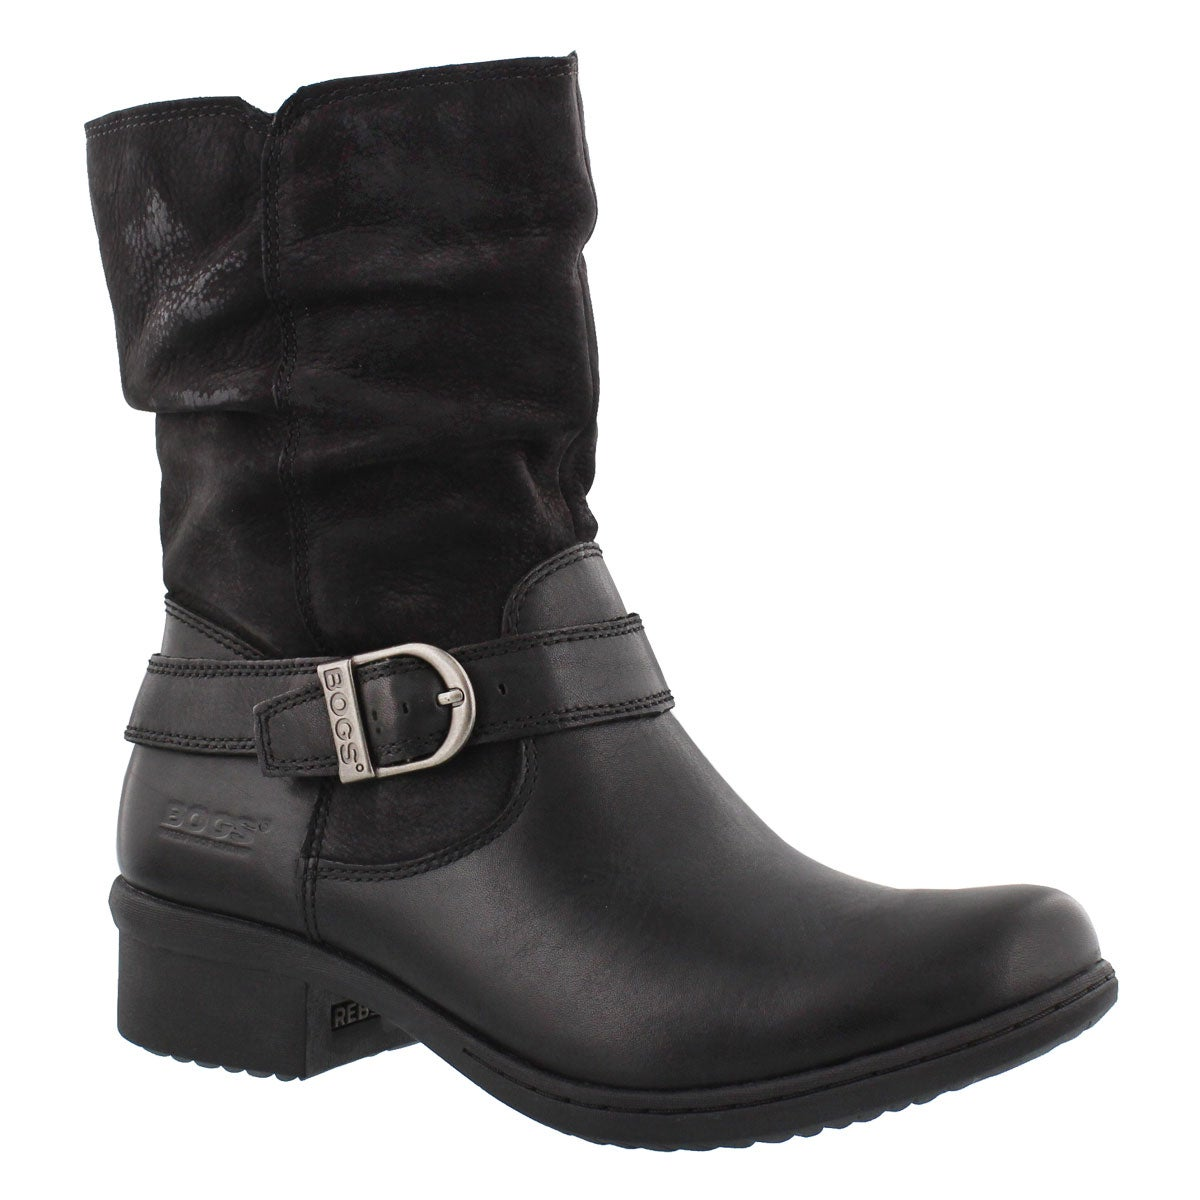 Women's CARLY MID black waterproof ankle boots